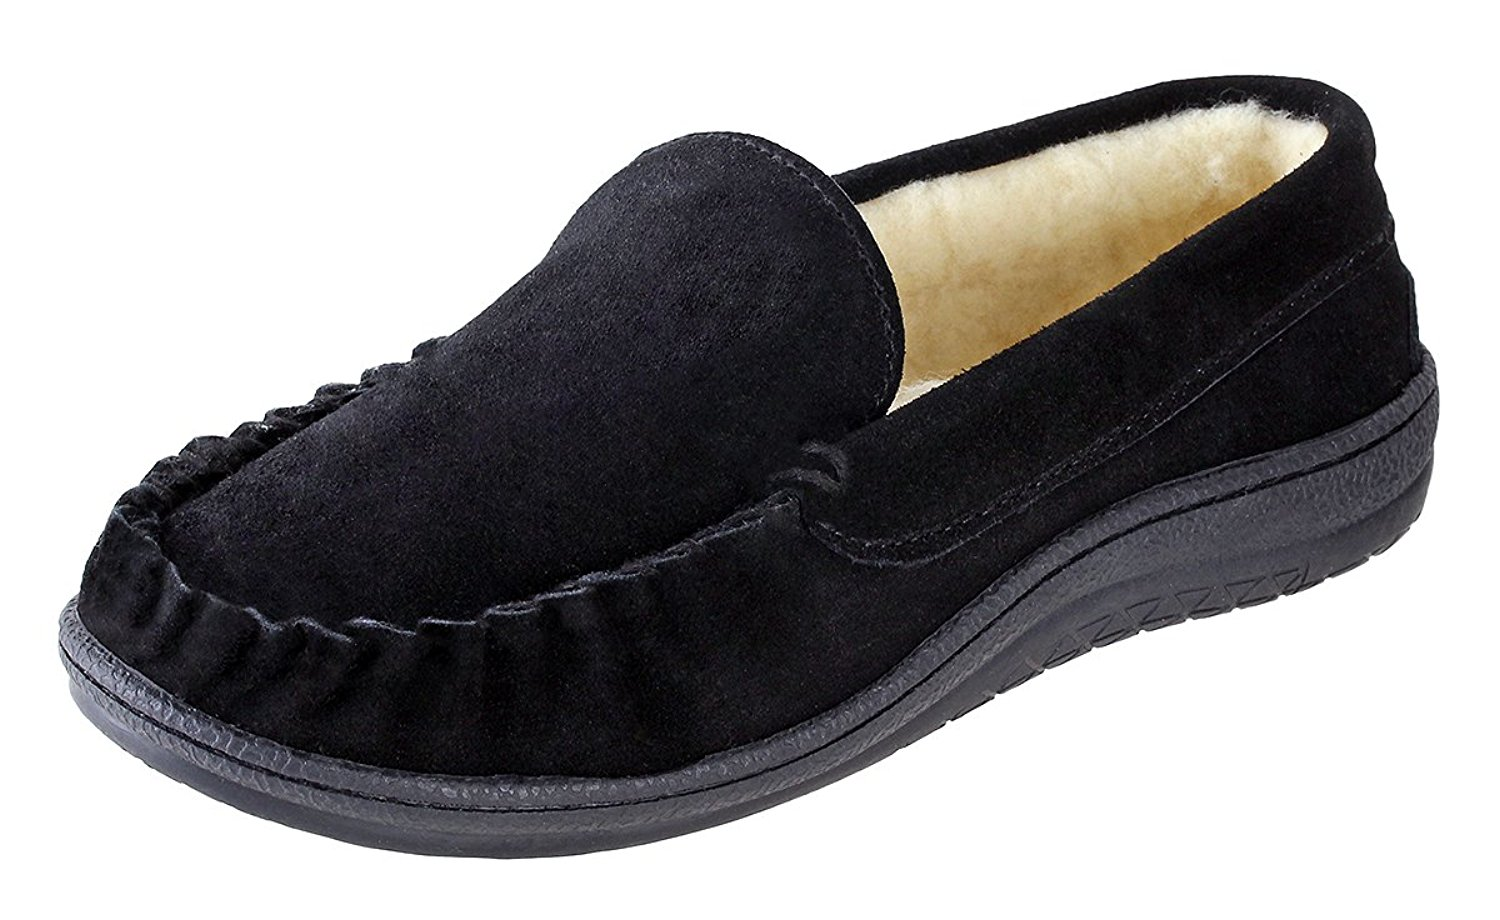 Urban Fox Royce Moccasin Slippers Men I Rubber-Sole I Cow-Suede I 100% Coral Fleece Lining I Comfortable House Slippers I Slippers For Men I Closed Toe & Heel Slippers For Men